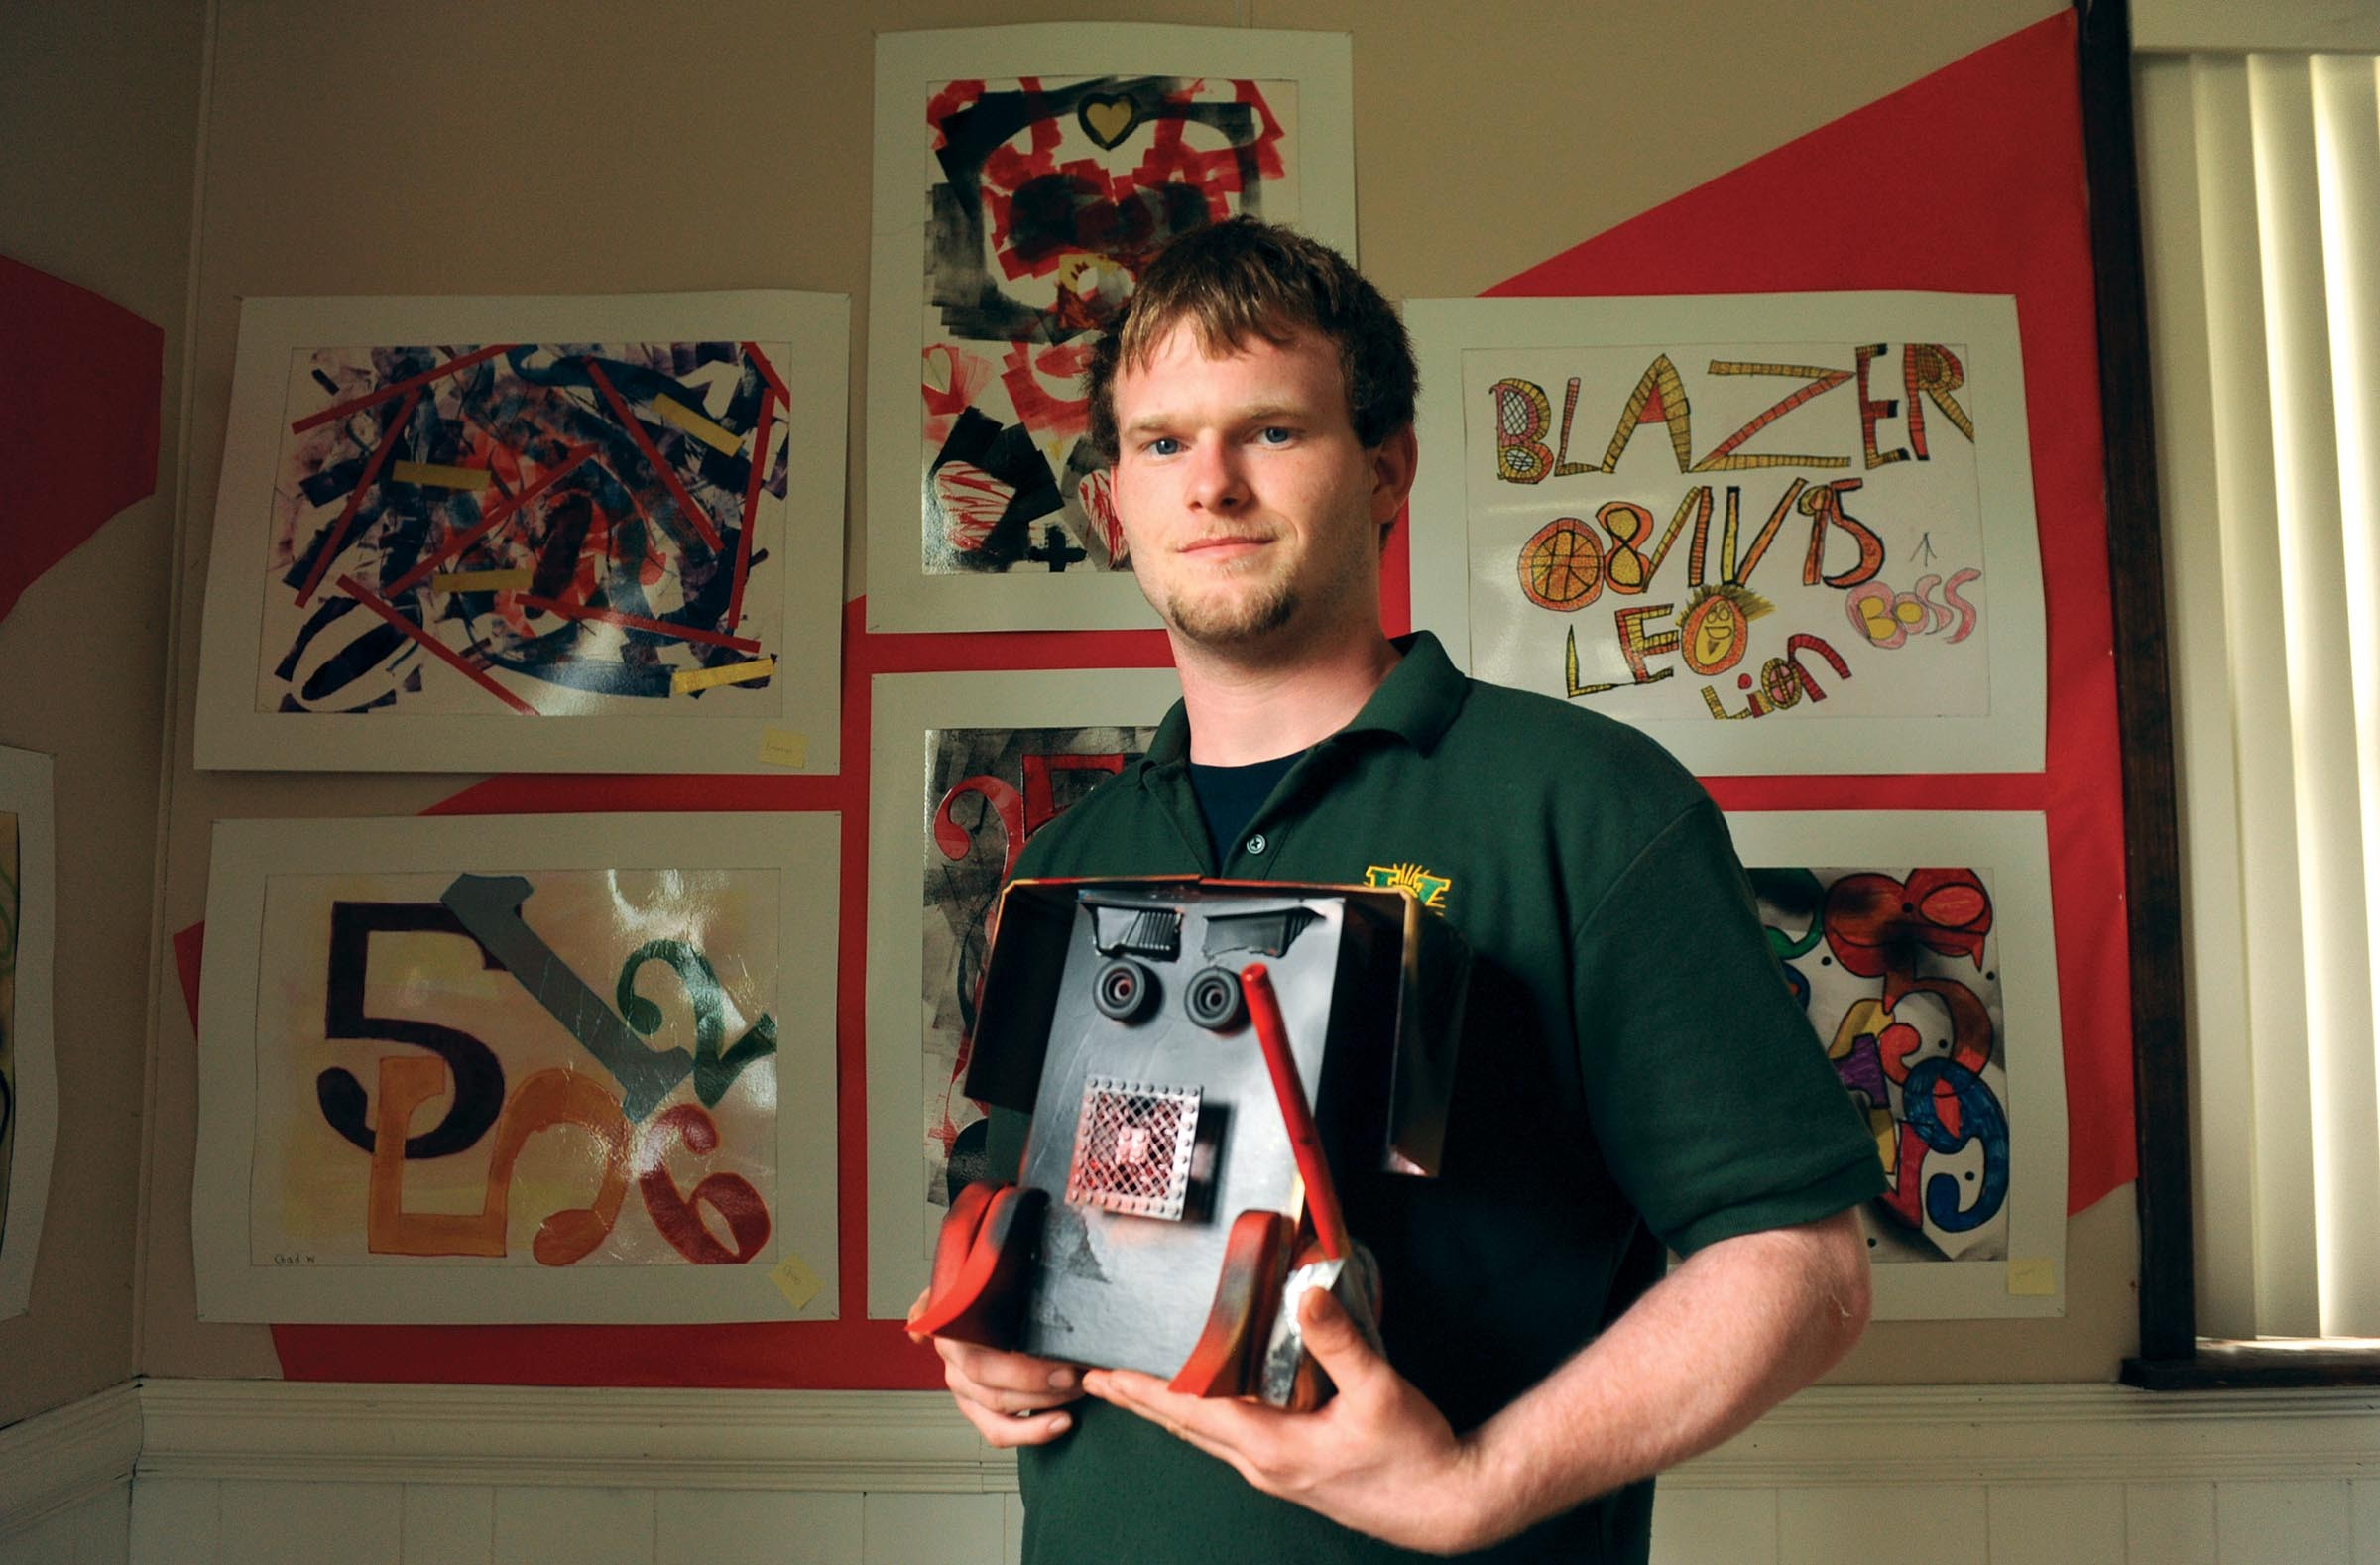 """Senior student Michael Rhoades holds up an art project he made for his father inspired by Darth Vader of """"Star Wars"""" fame. Behind him hang paintings from other art students at the alternative John G. Wood School. - SCOTT ELMQUIST"""